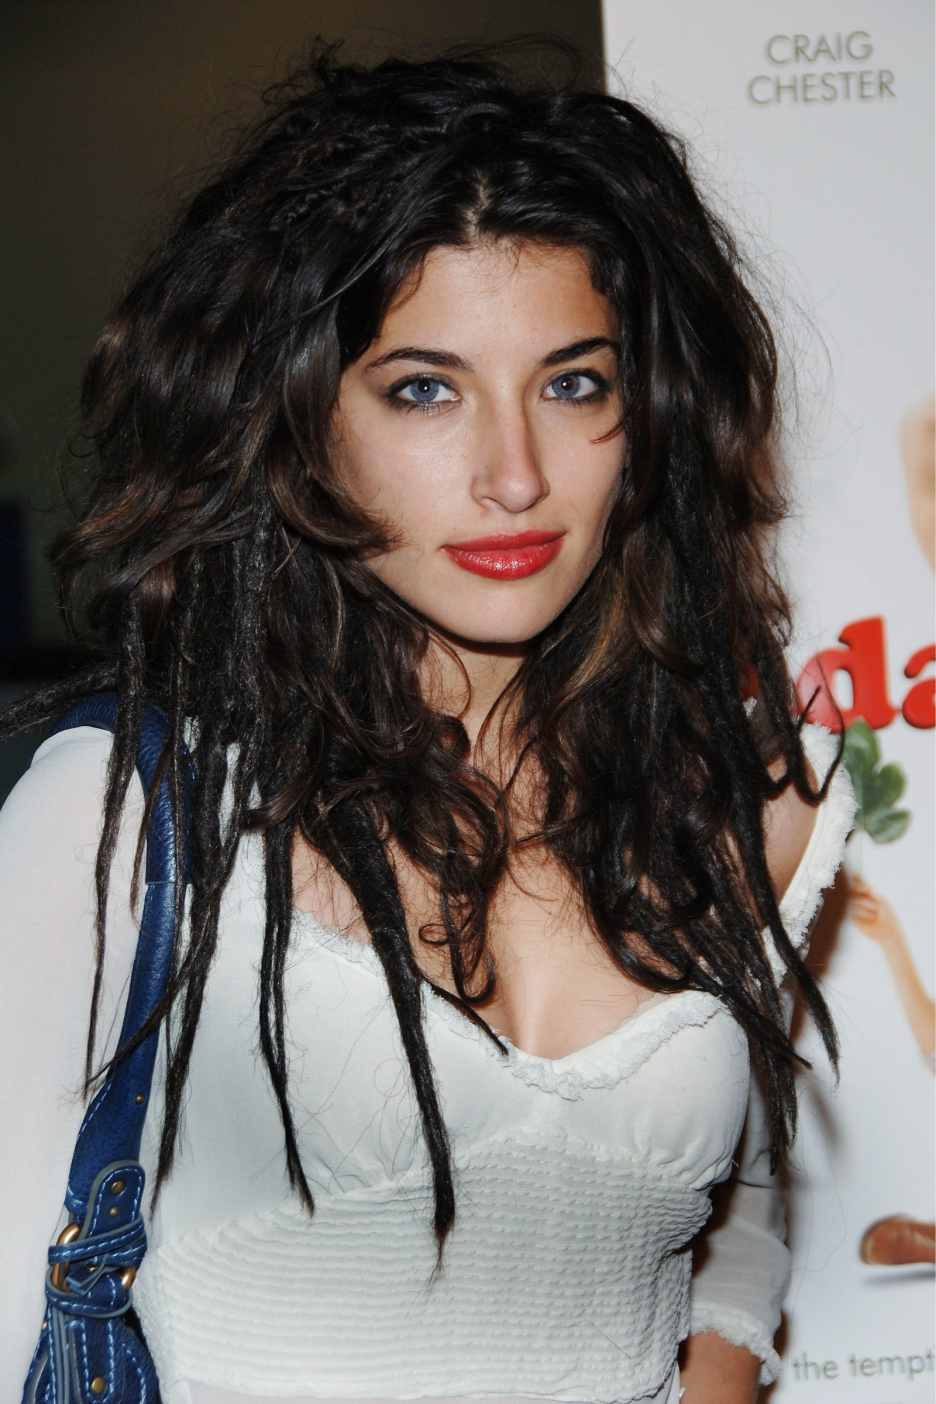 Faces: Tania Raymonde - 22 March 1988